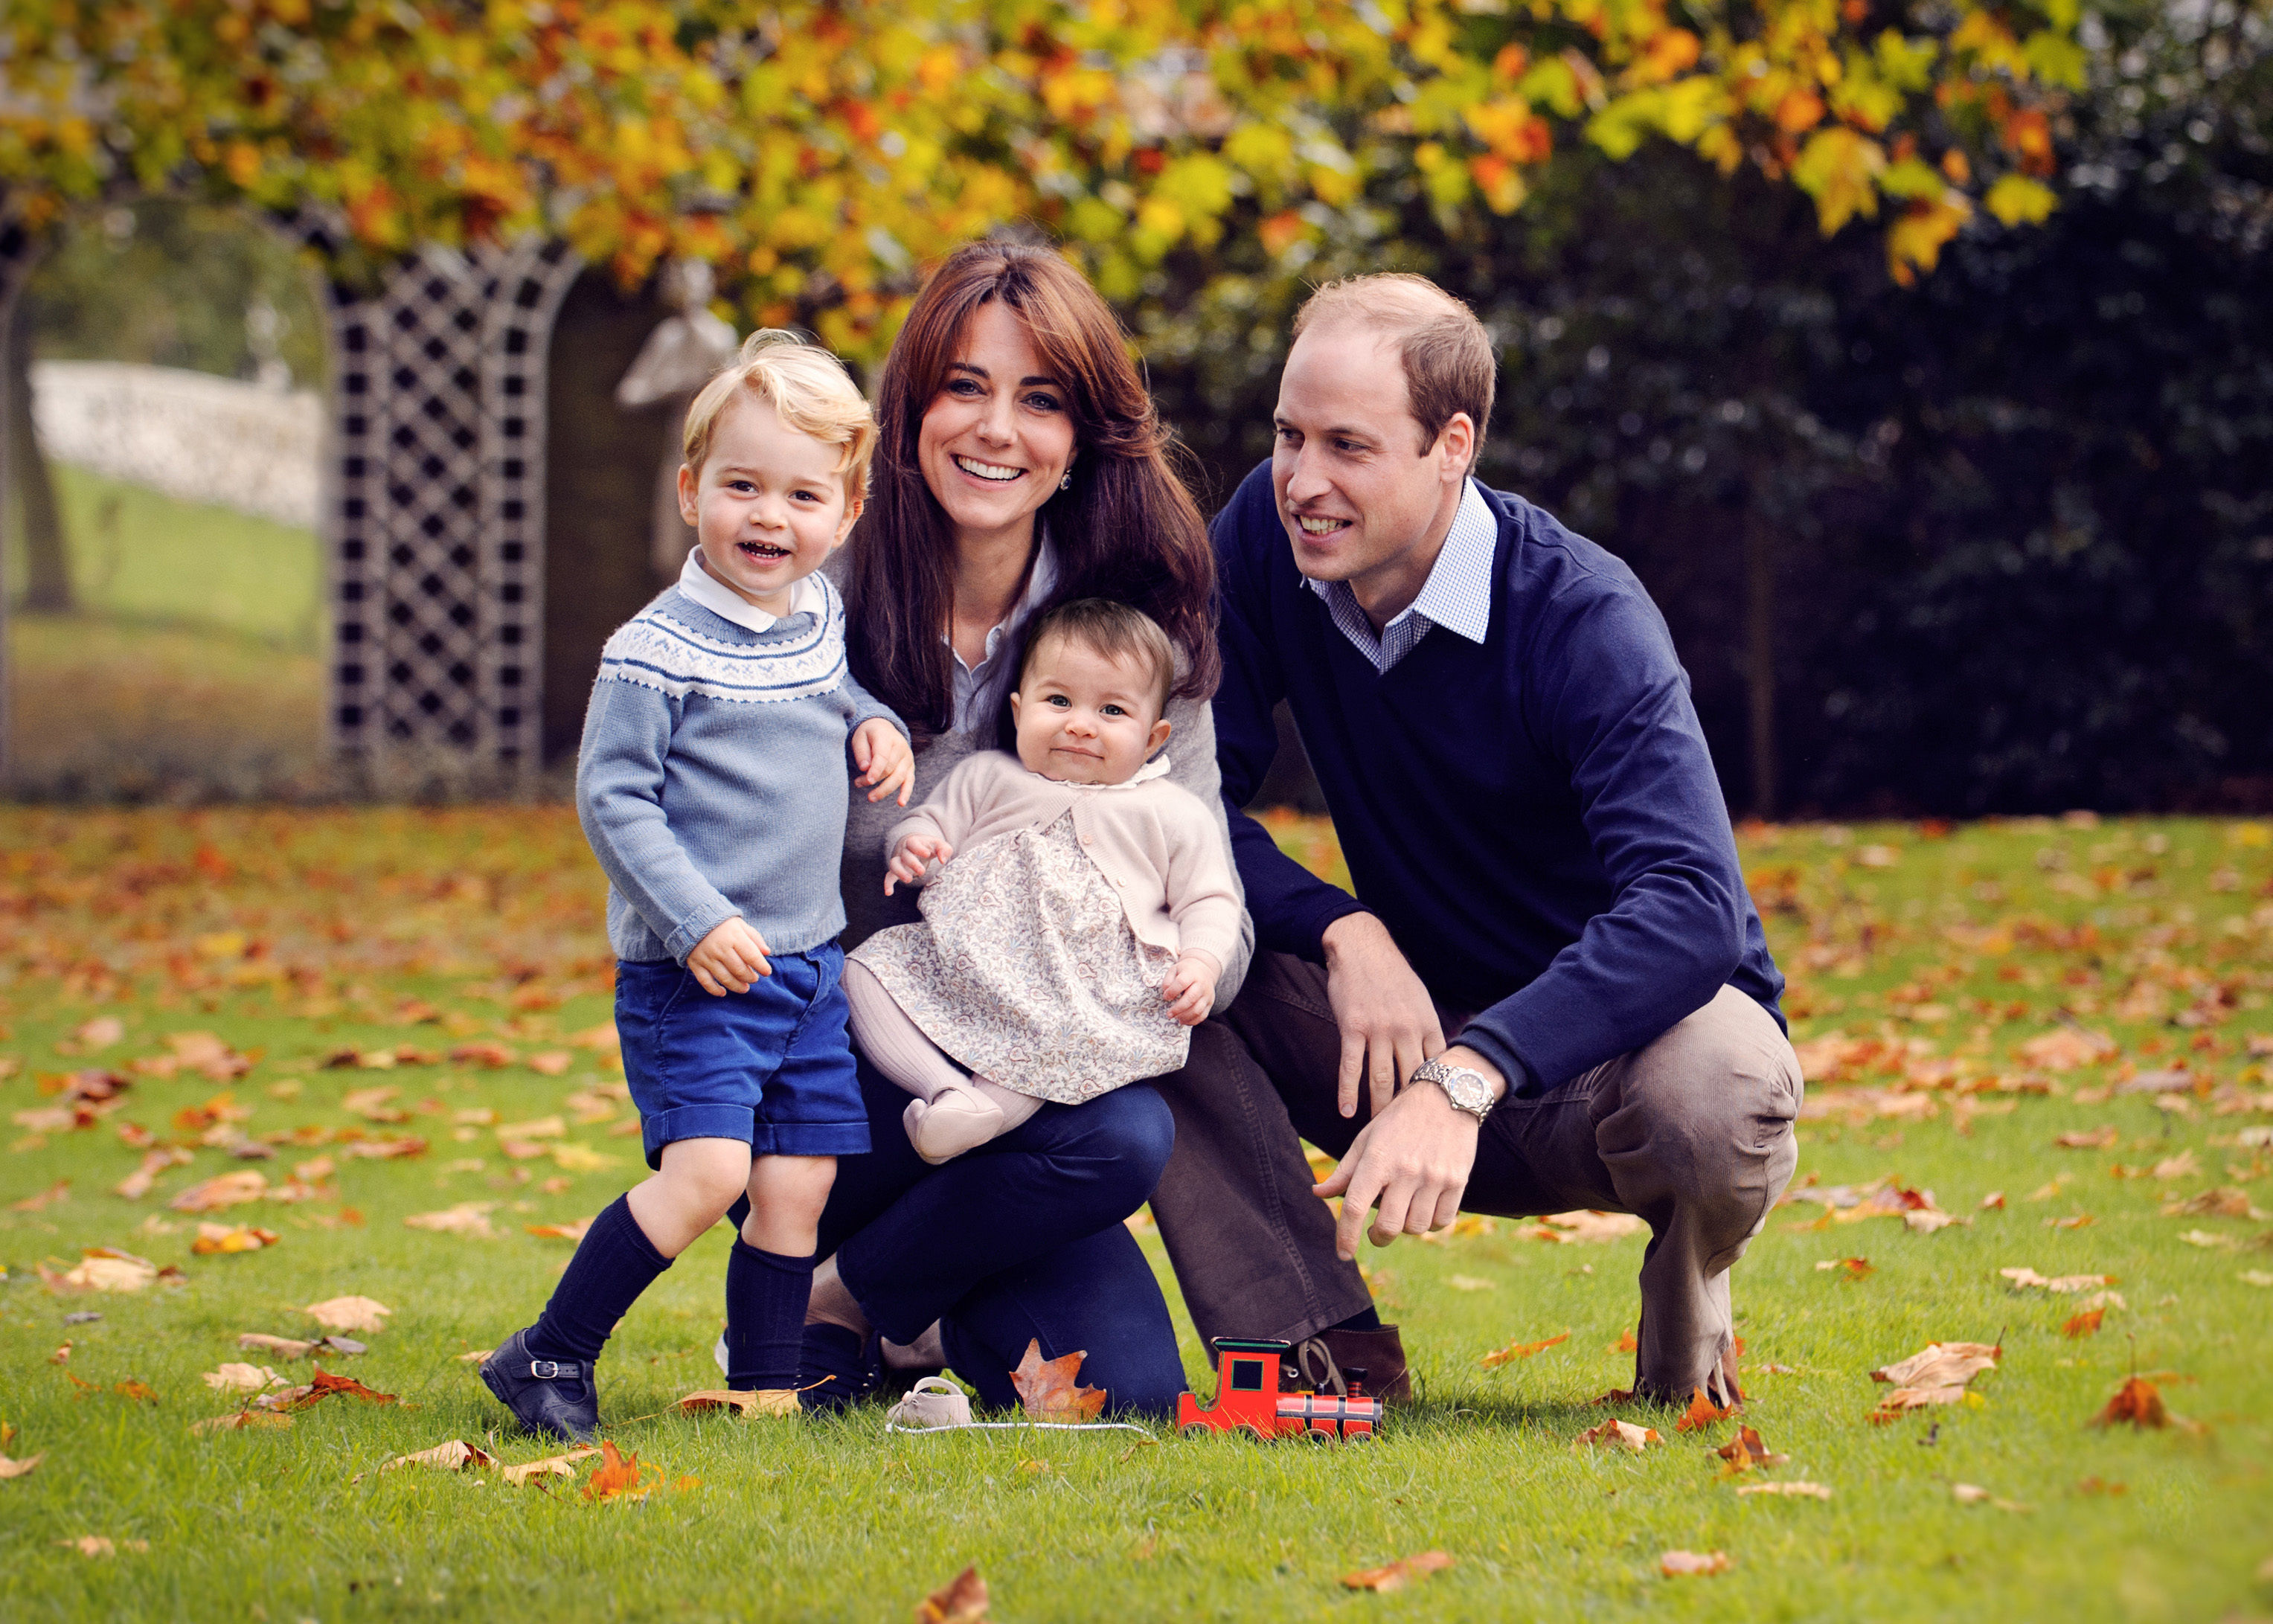 In this October handout image provided by Kensington Palace on Dec. 18, 2015, Prince William, Duke of Cambridge, and Catherine, Duchess of Cambridge, pose for a portrait with their children, Prince George and Princess Charlotte.